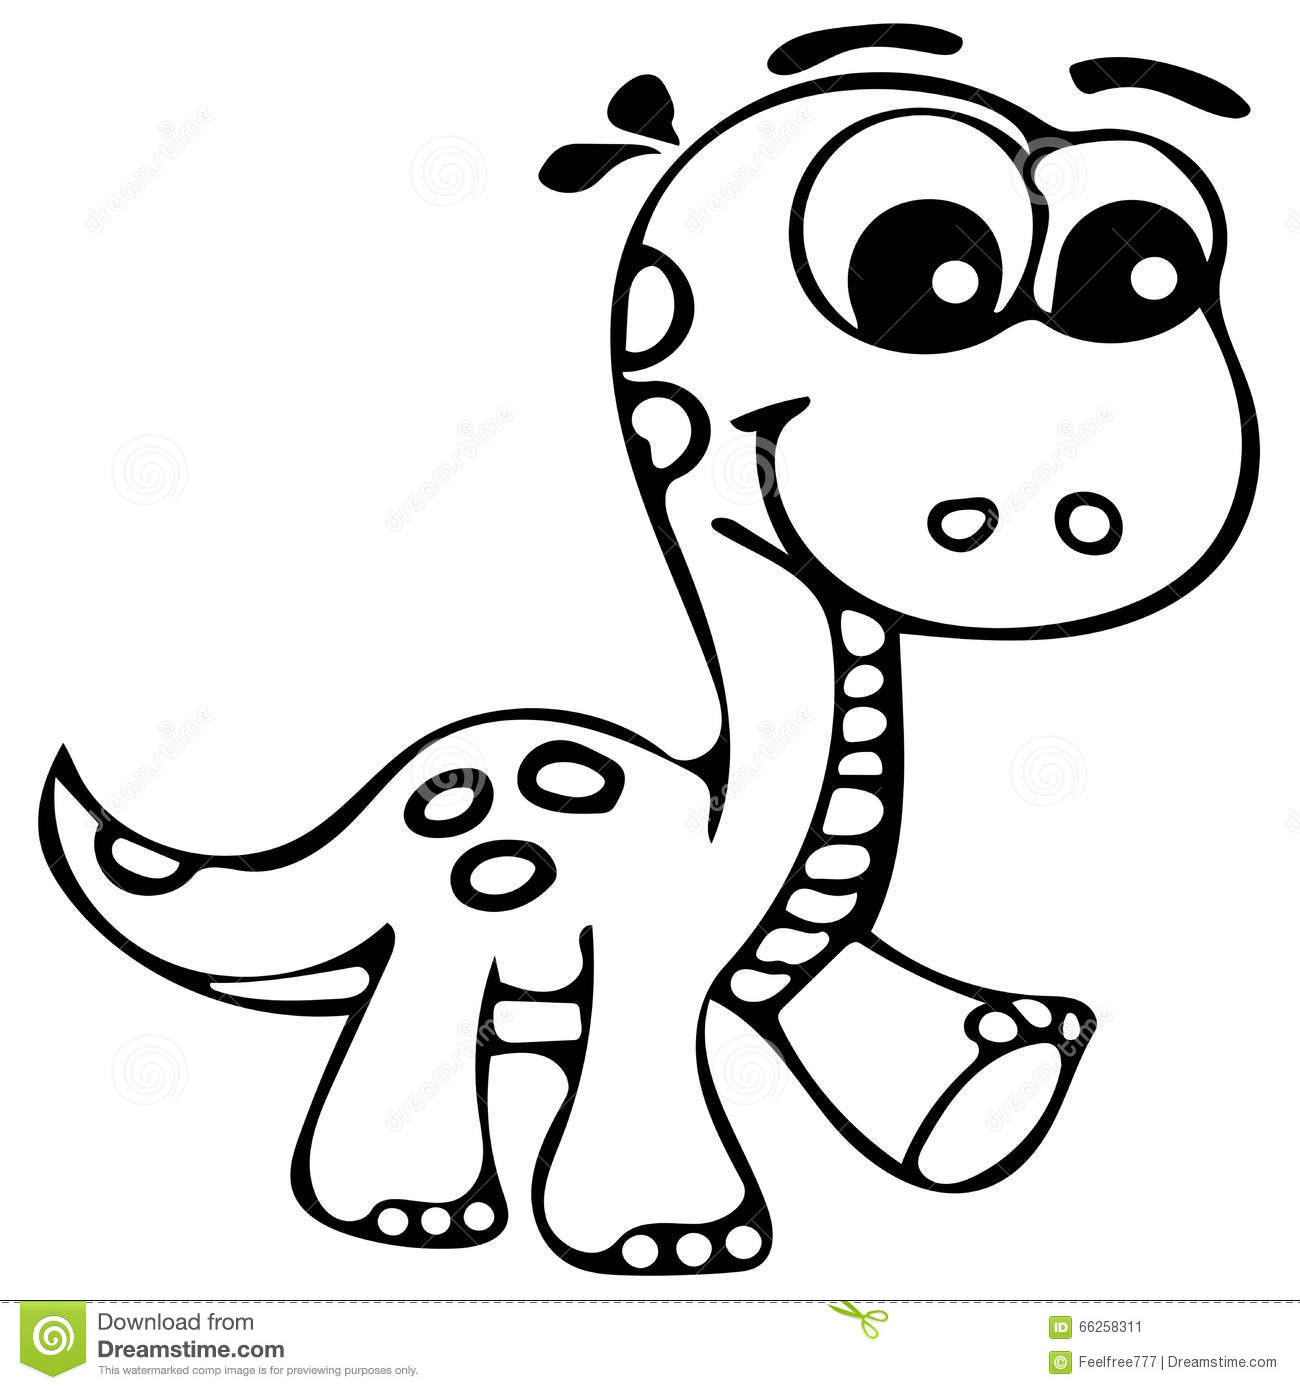 1300x1390 Cute Dinosaur Drawing Cute Dinosaur Coloring Pages